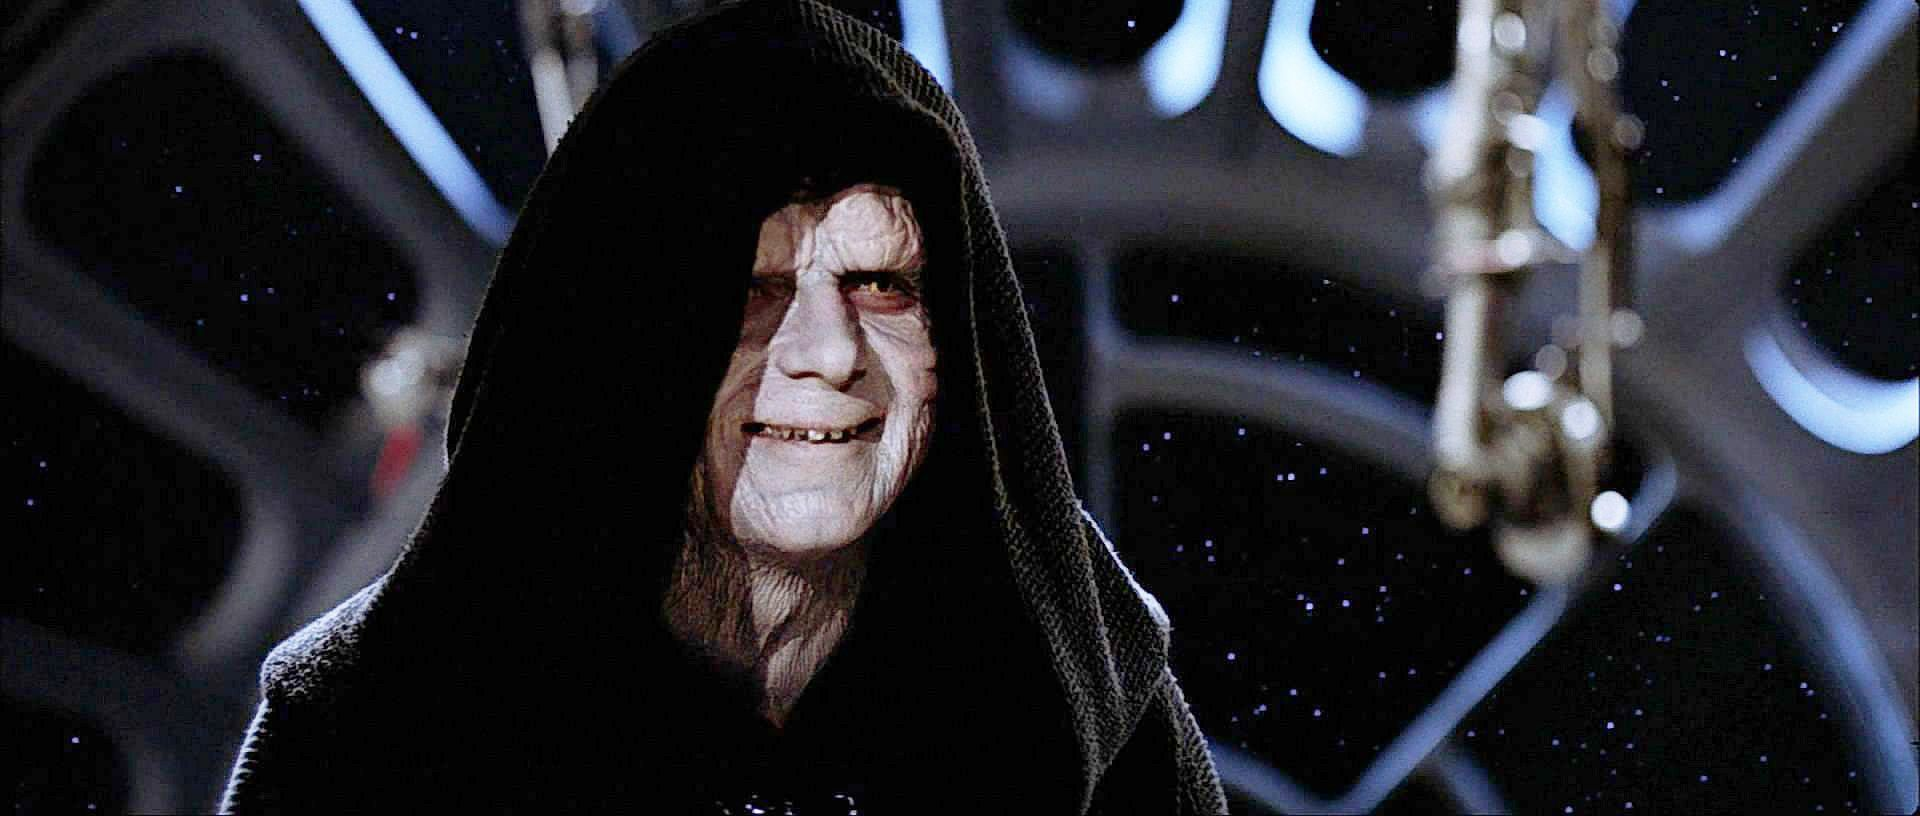 Emperor Palpatine (Star Wars: Return of the Jedi)